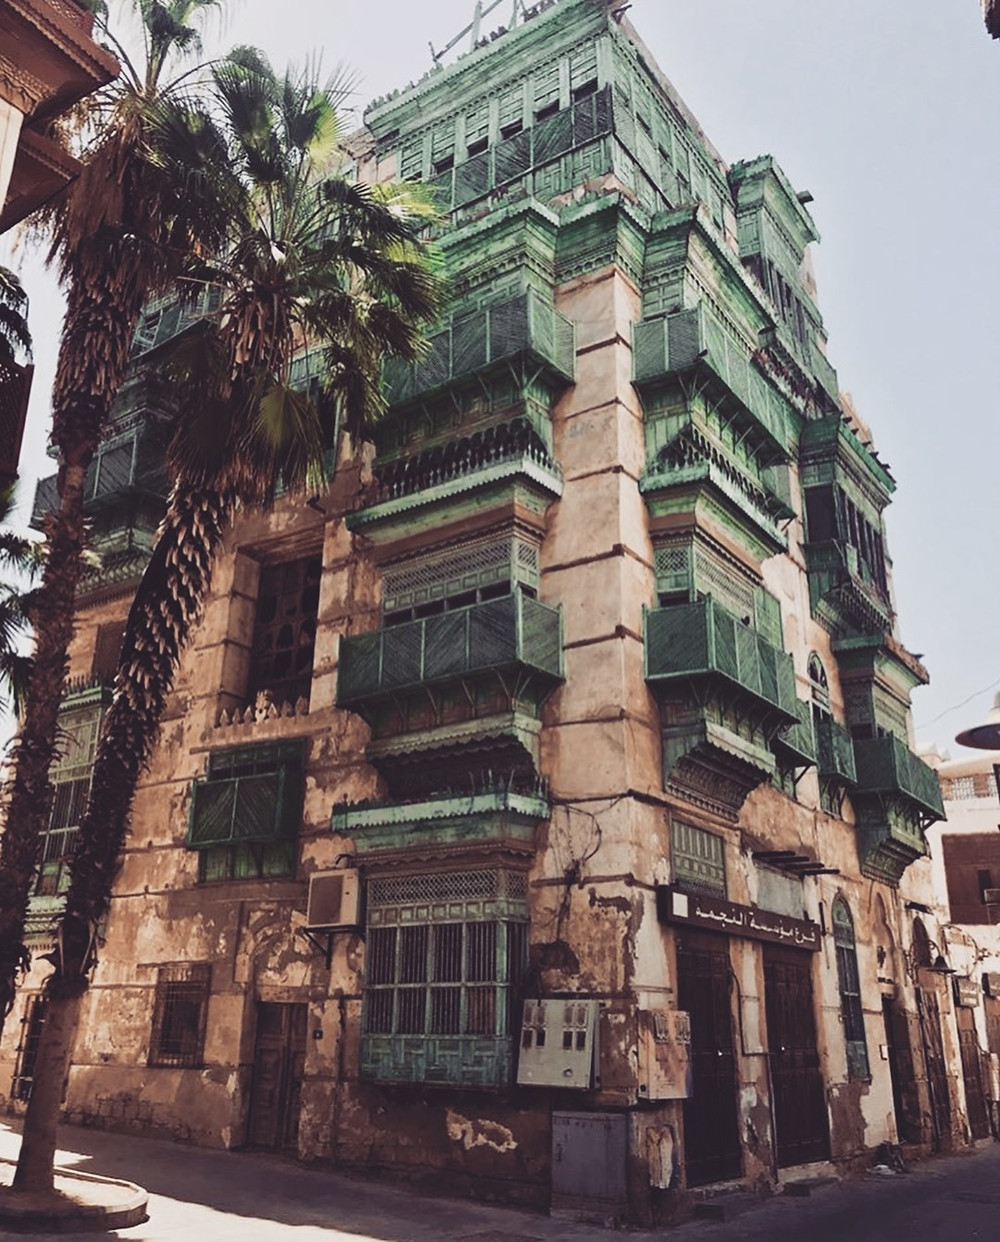 A building facade in Old Town Jeddah, in Saudi Arabia